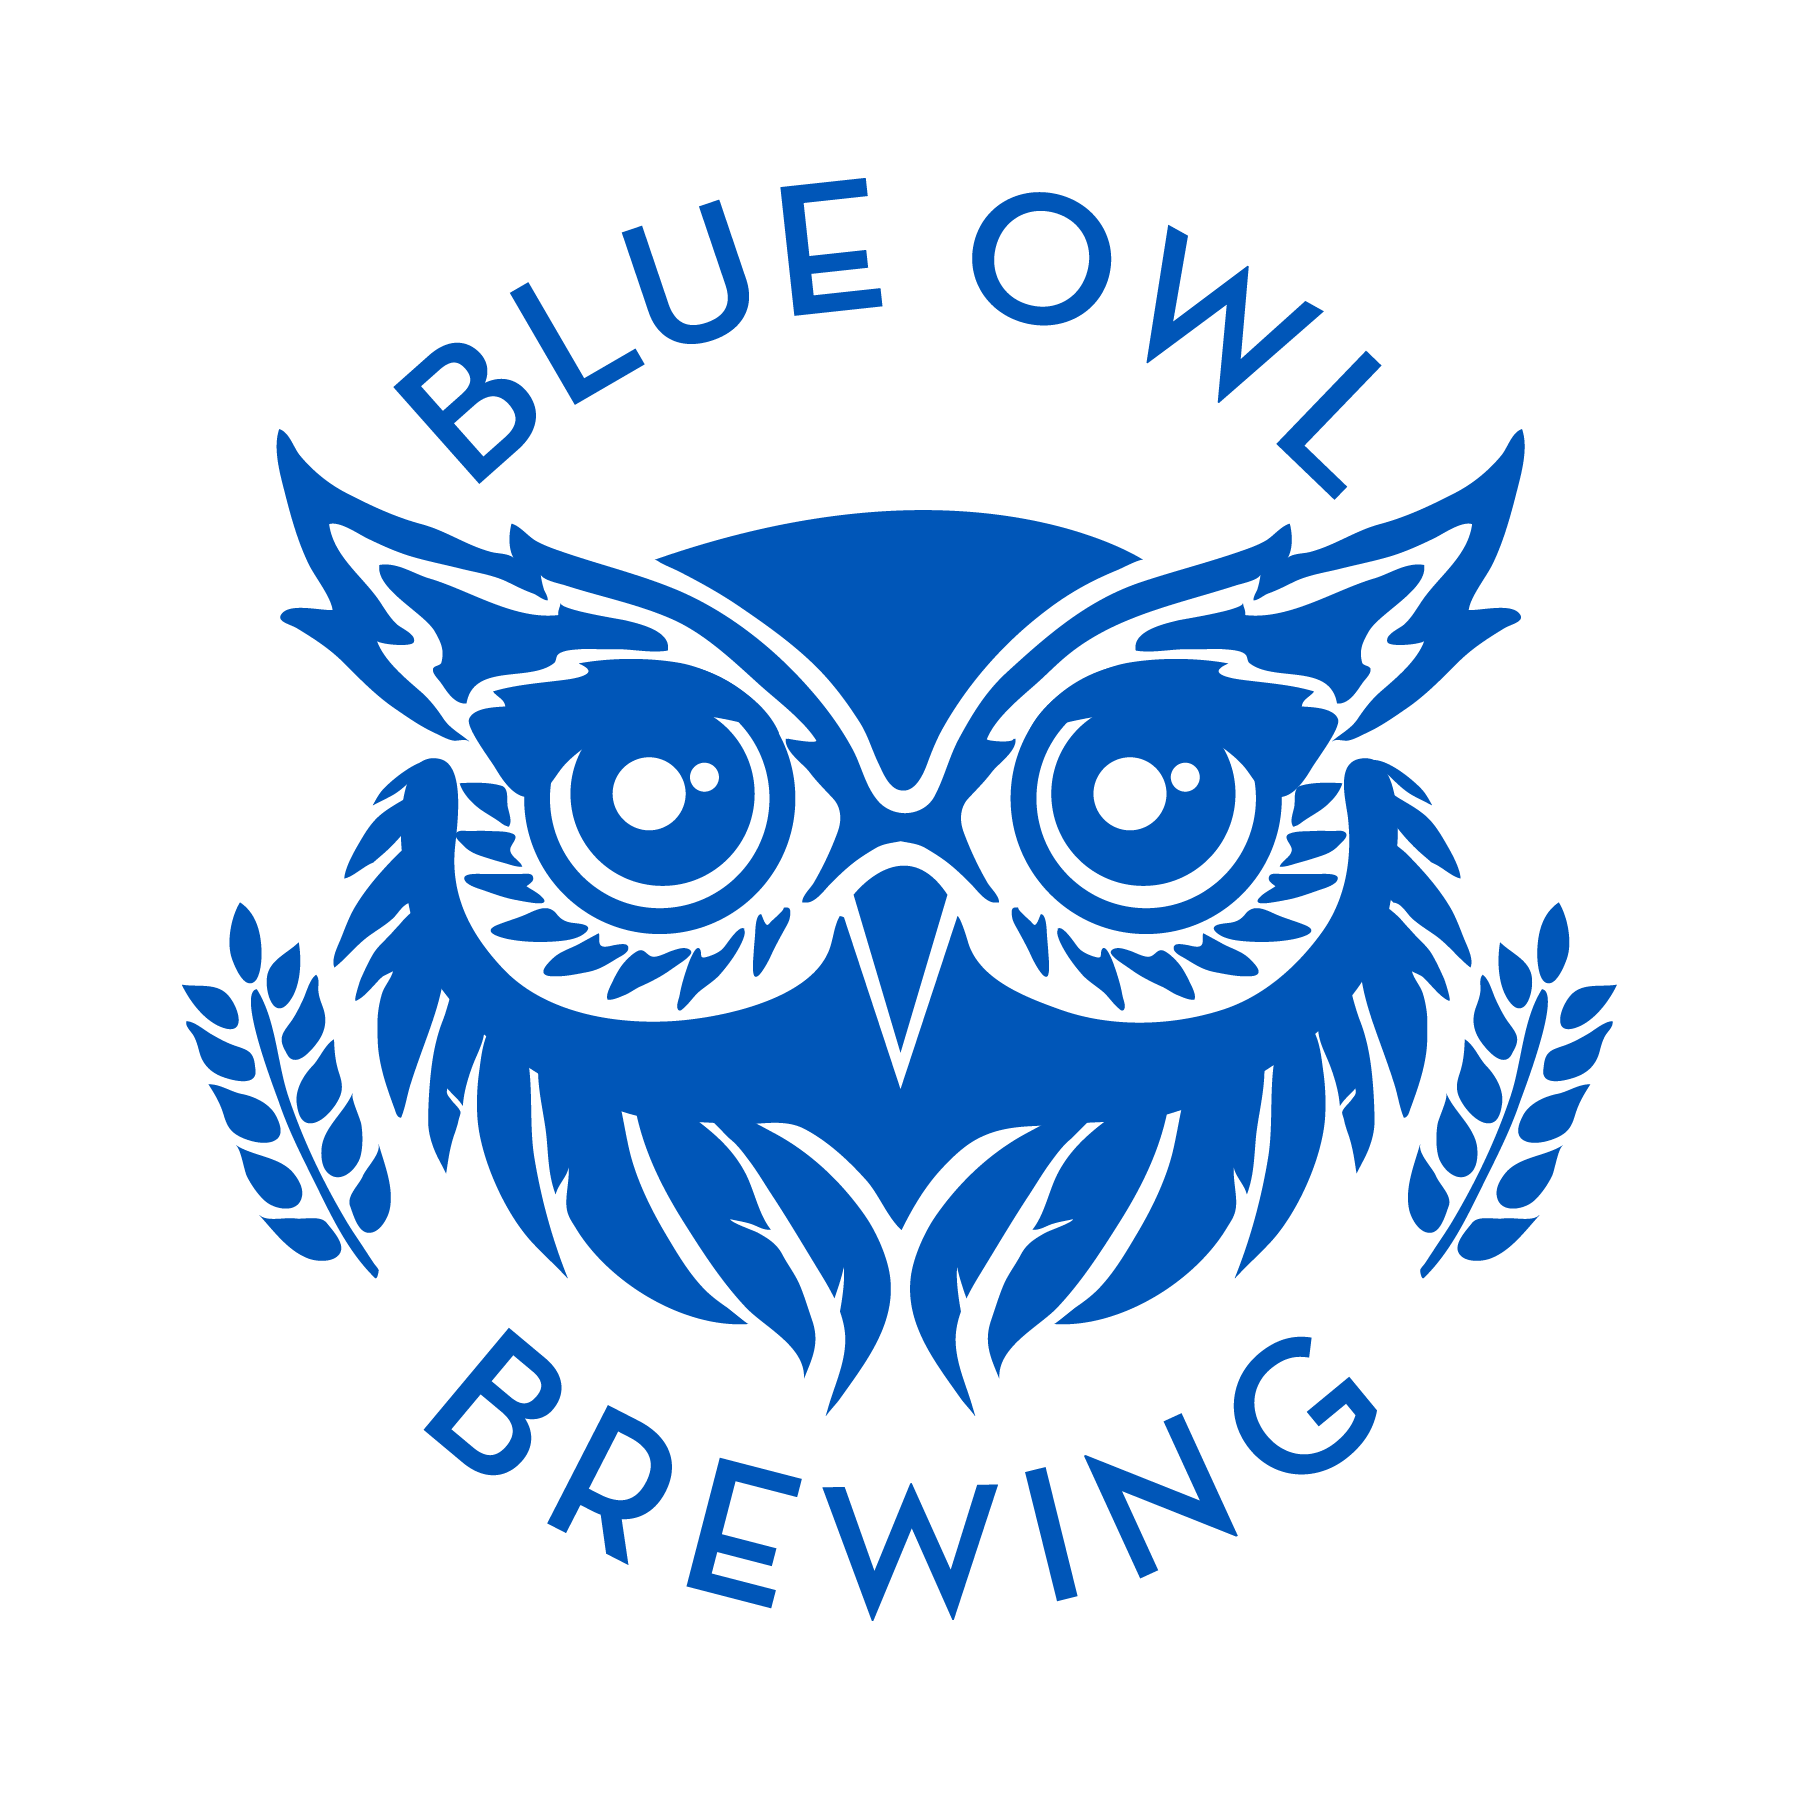 Blue Owl Brewing logo